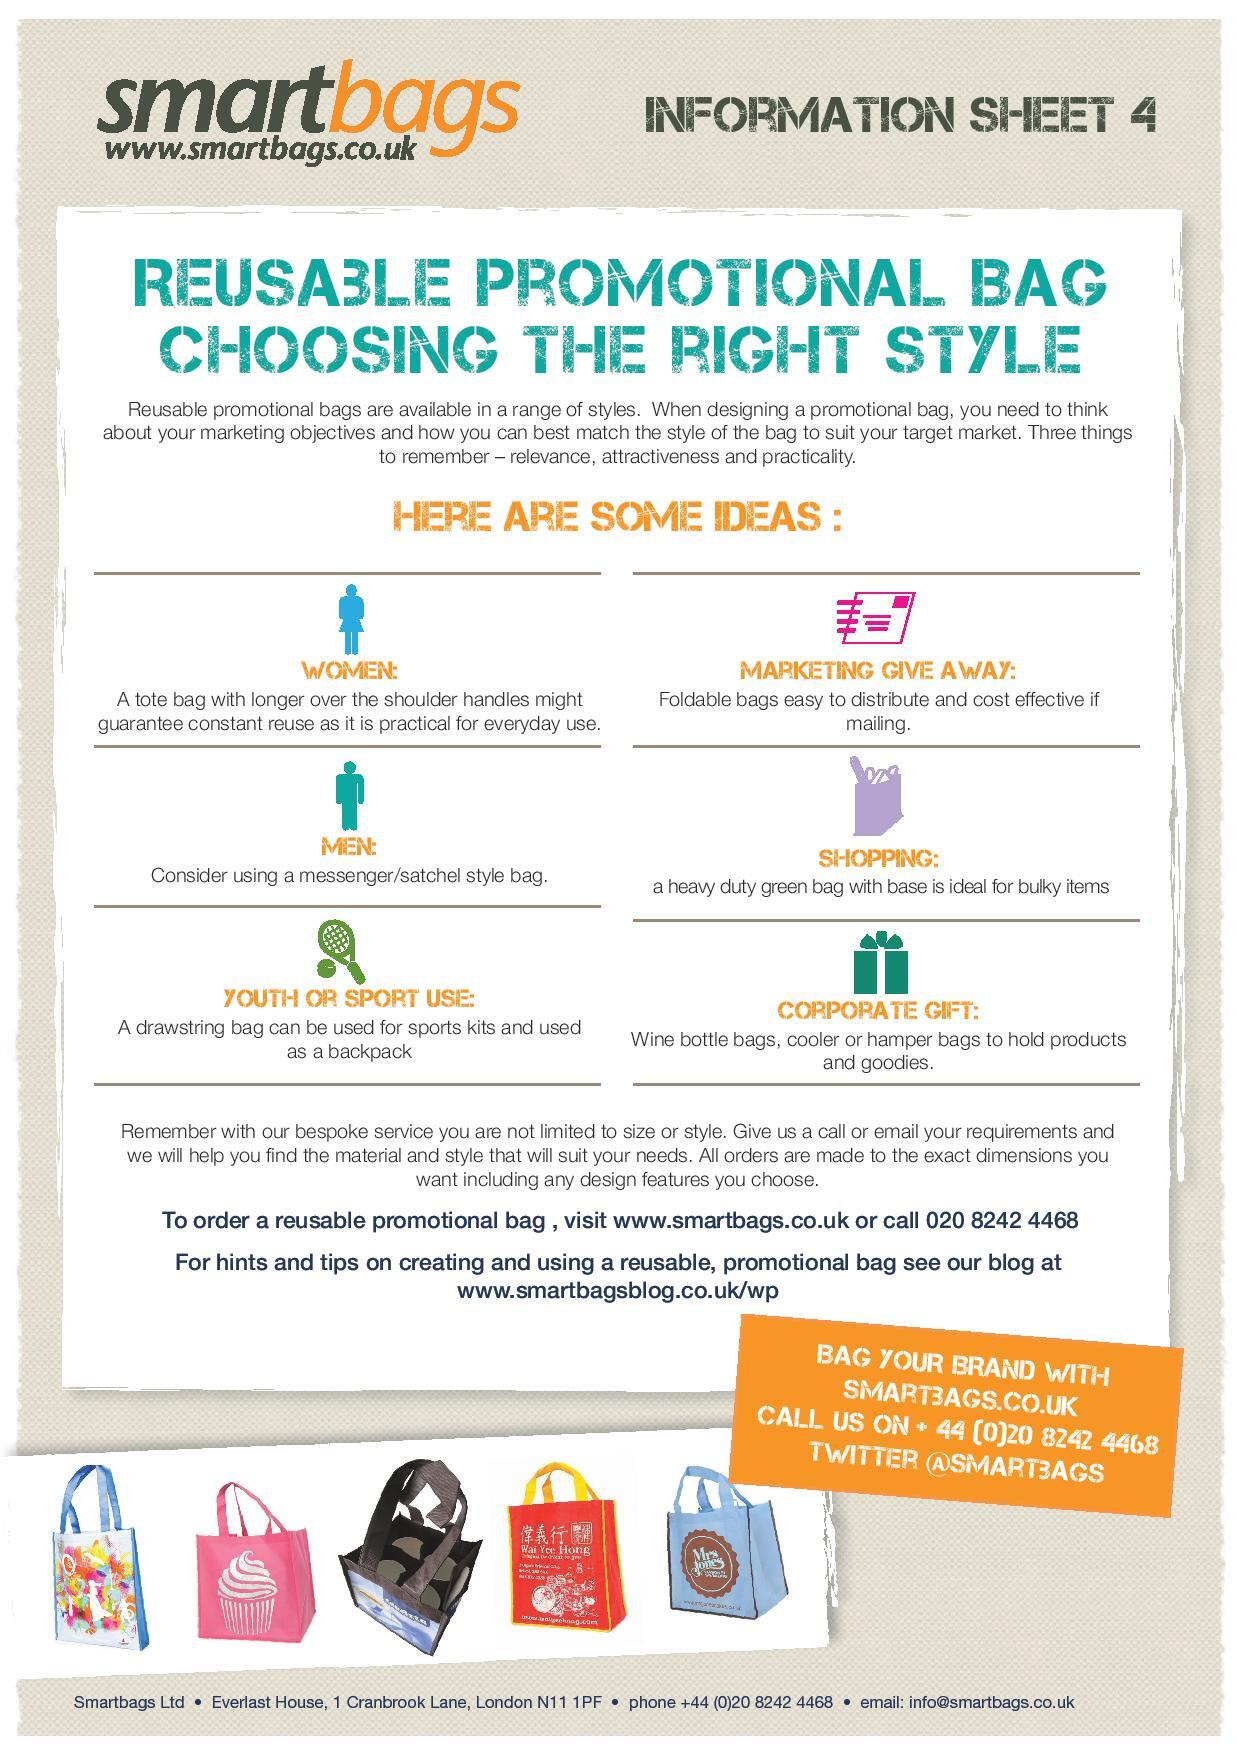 Choosing the Right Bag Style for Your Reusable Promotional Bags